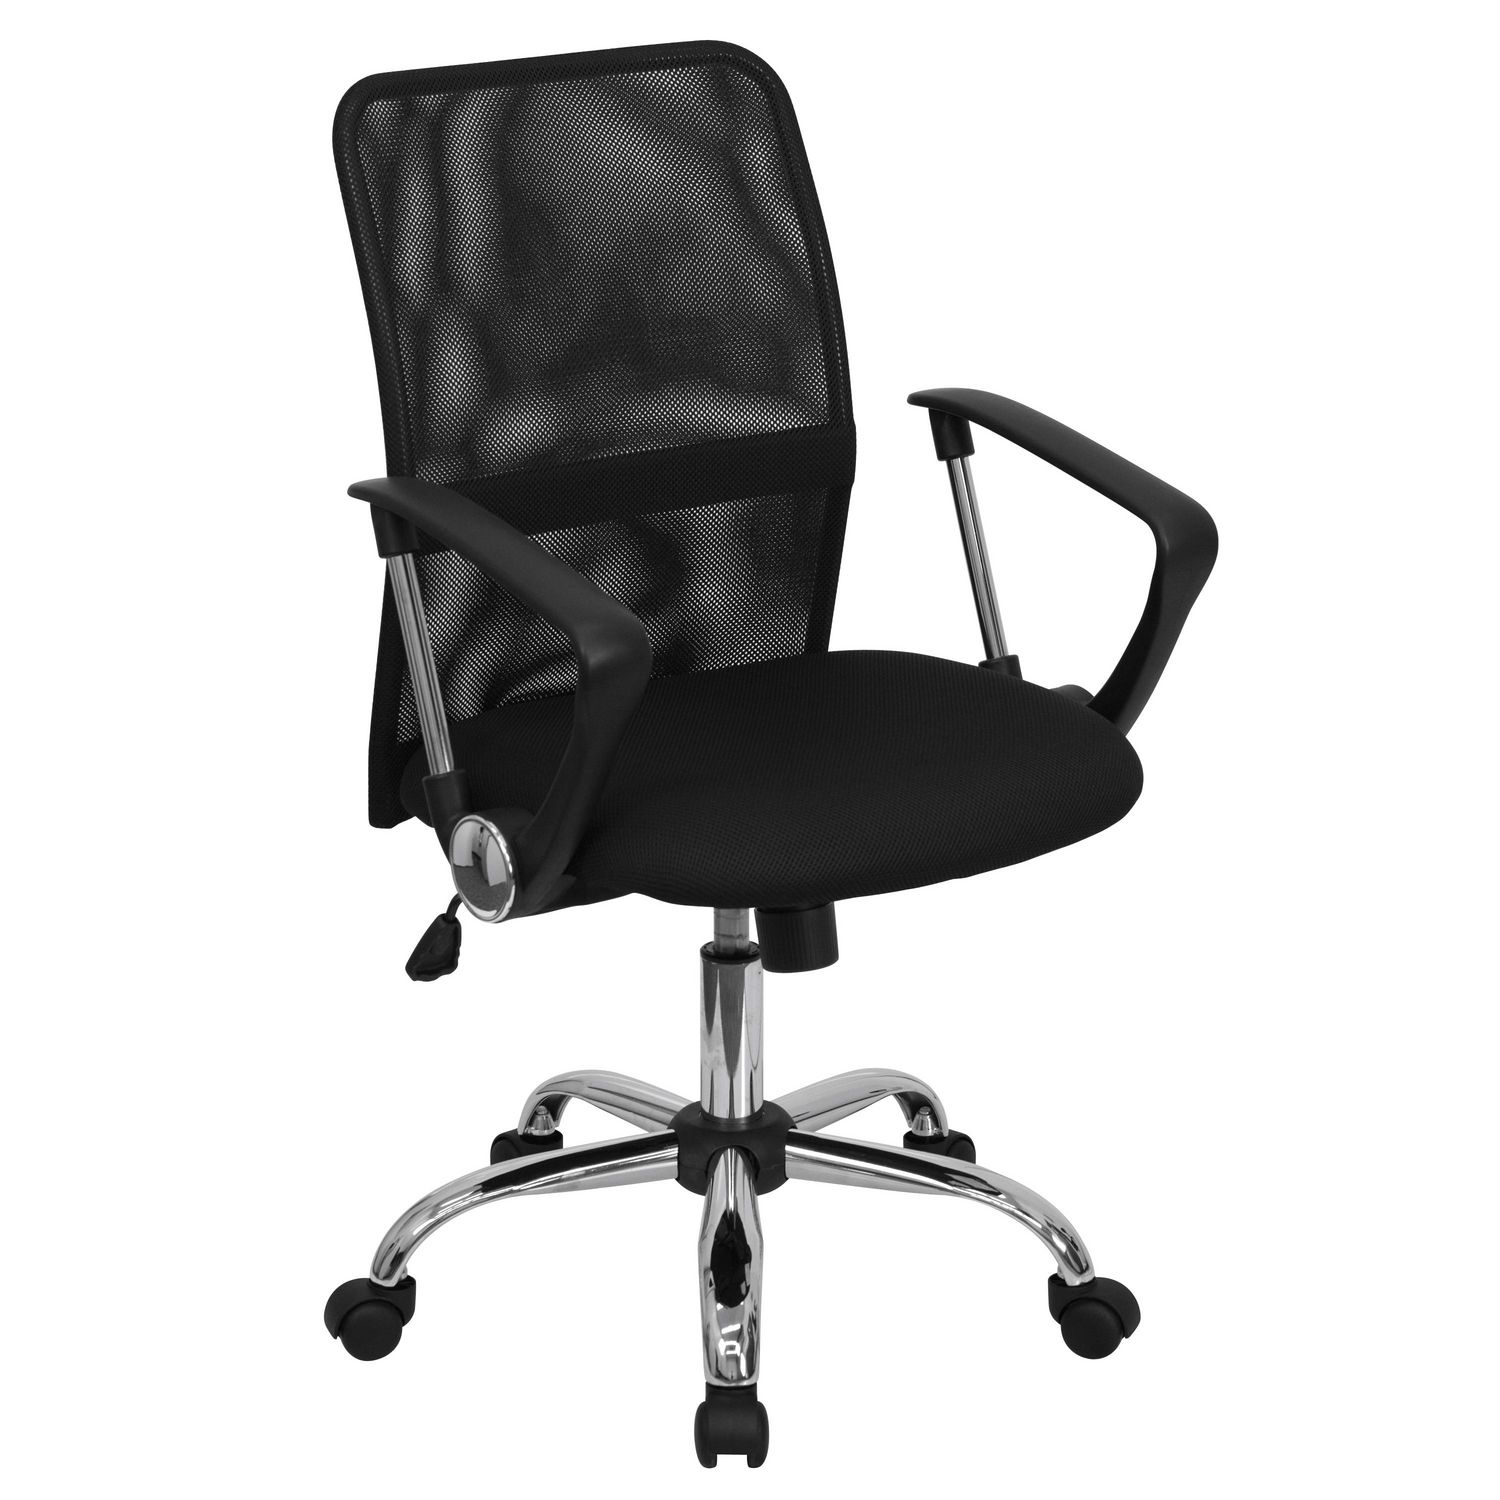 Task Chairs With Arms Mid Back Black Mesh Swivel Task Chair With Lumbar Support Band And Arms